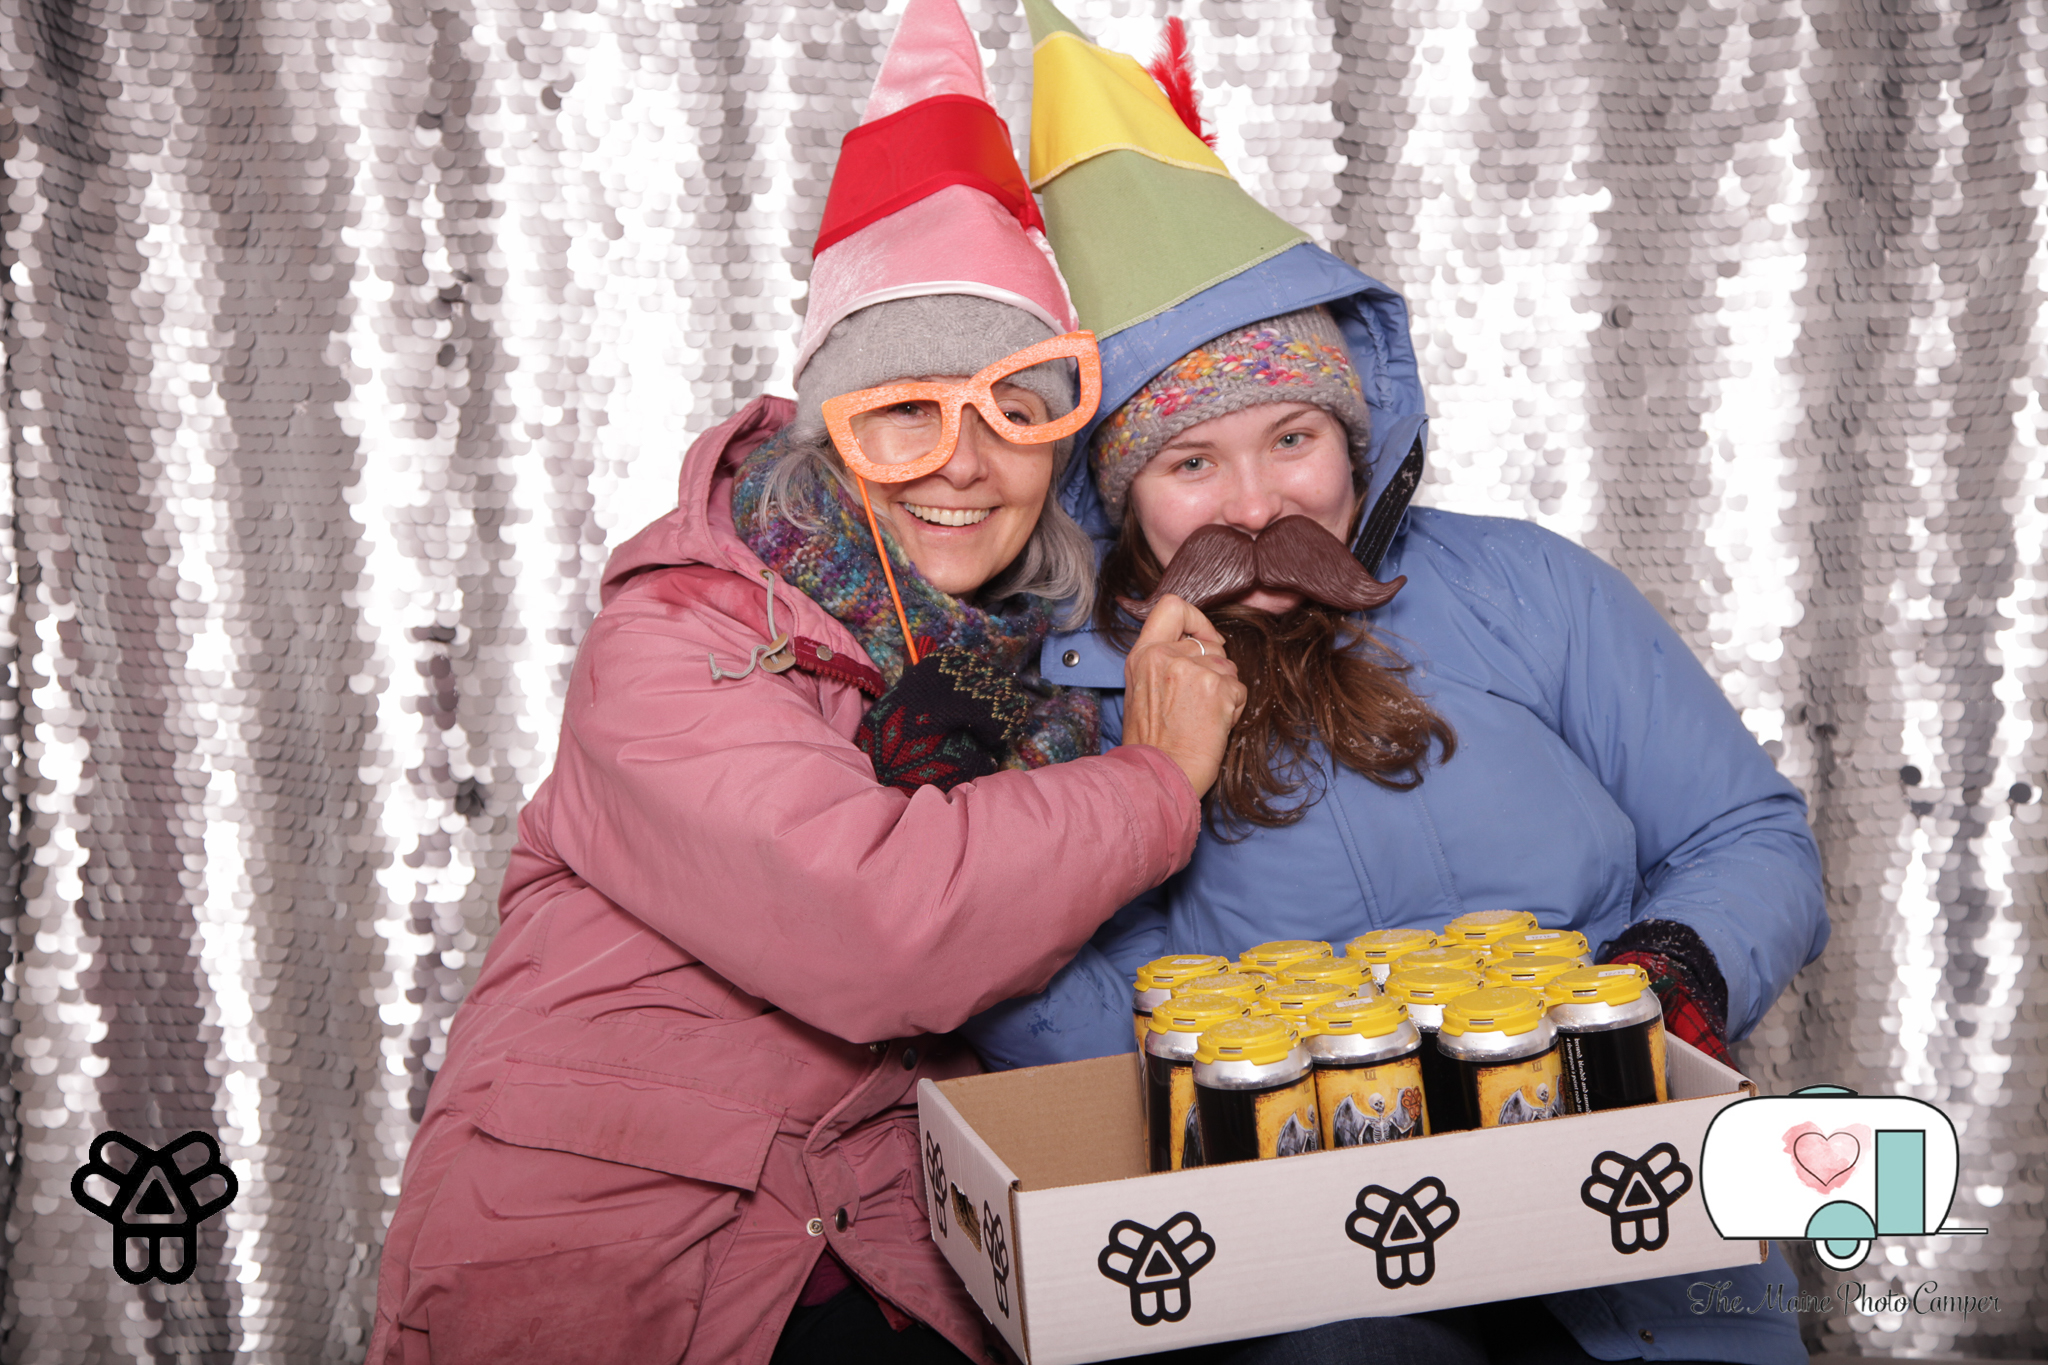 Bissell Brothers Holiday Party 2016, The Maine Photo Camper, Maine Tinker Photography -32.jpg